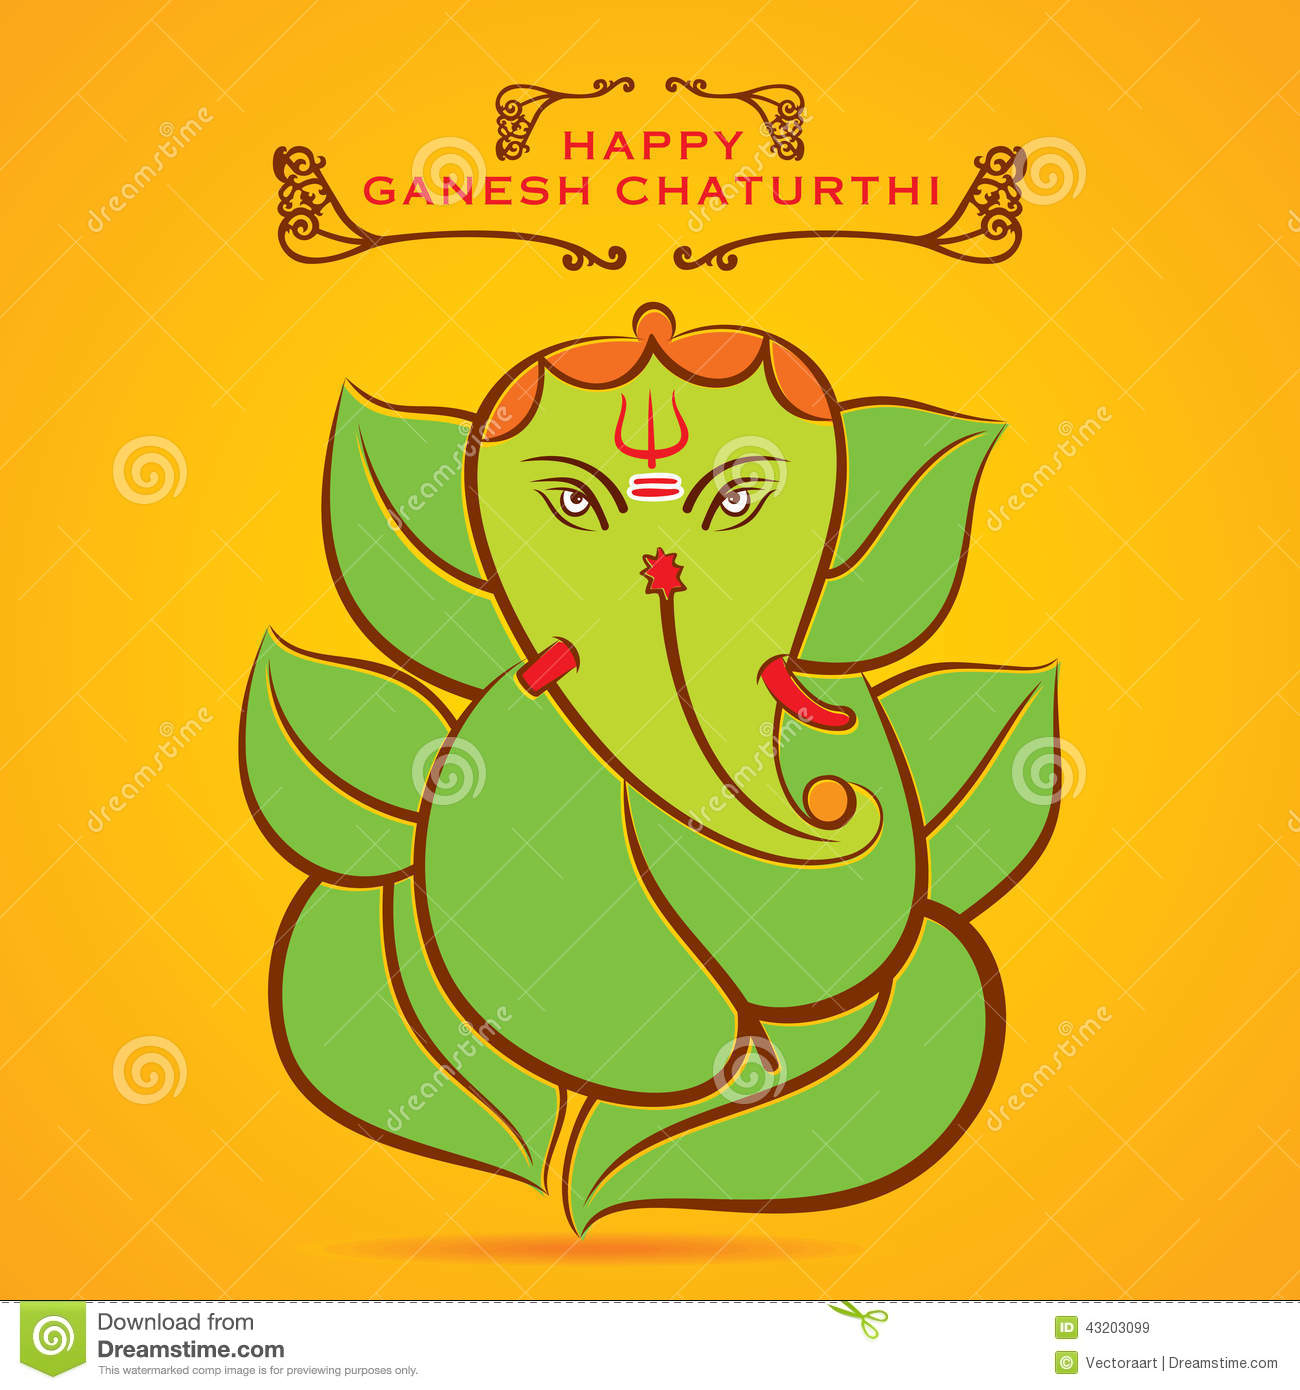 Happy Ganesh Chaturthi Sketch Greeting Card Design Stock